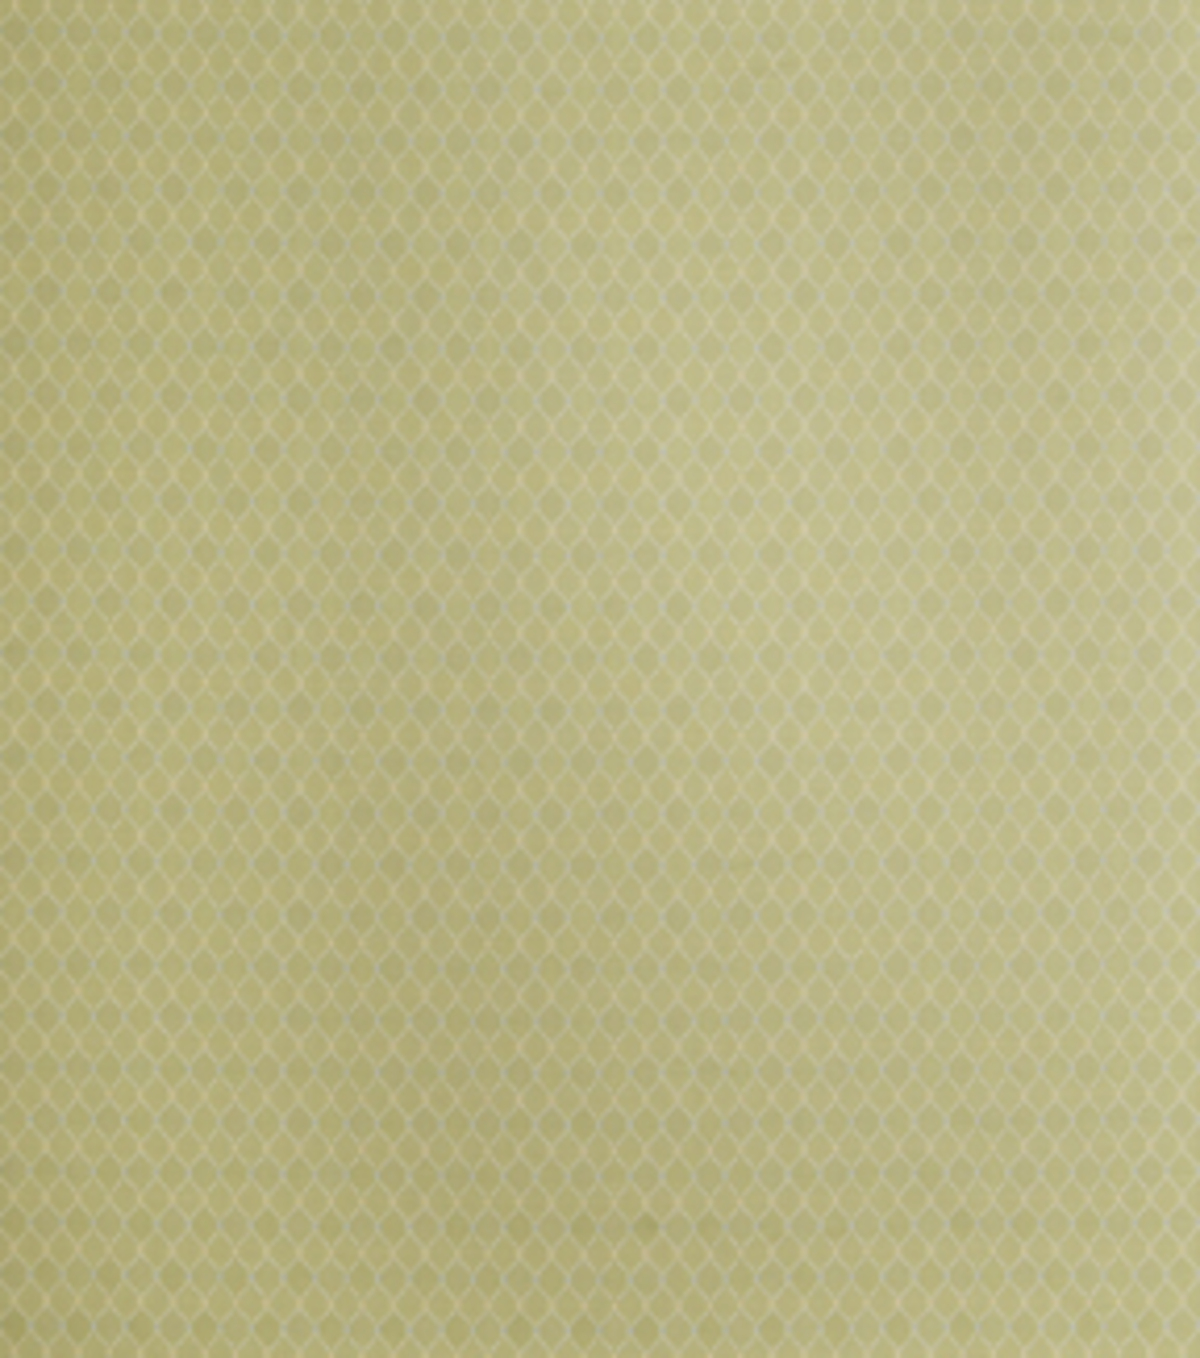 Home Decor 8\u0022x8\u0022 Fabric Swatch-Eaton Square Colchester Pistachio